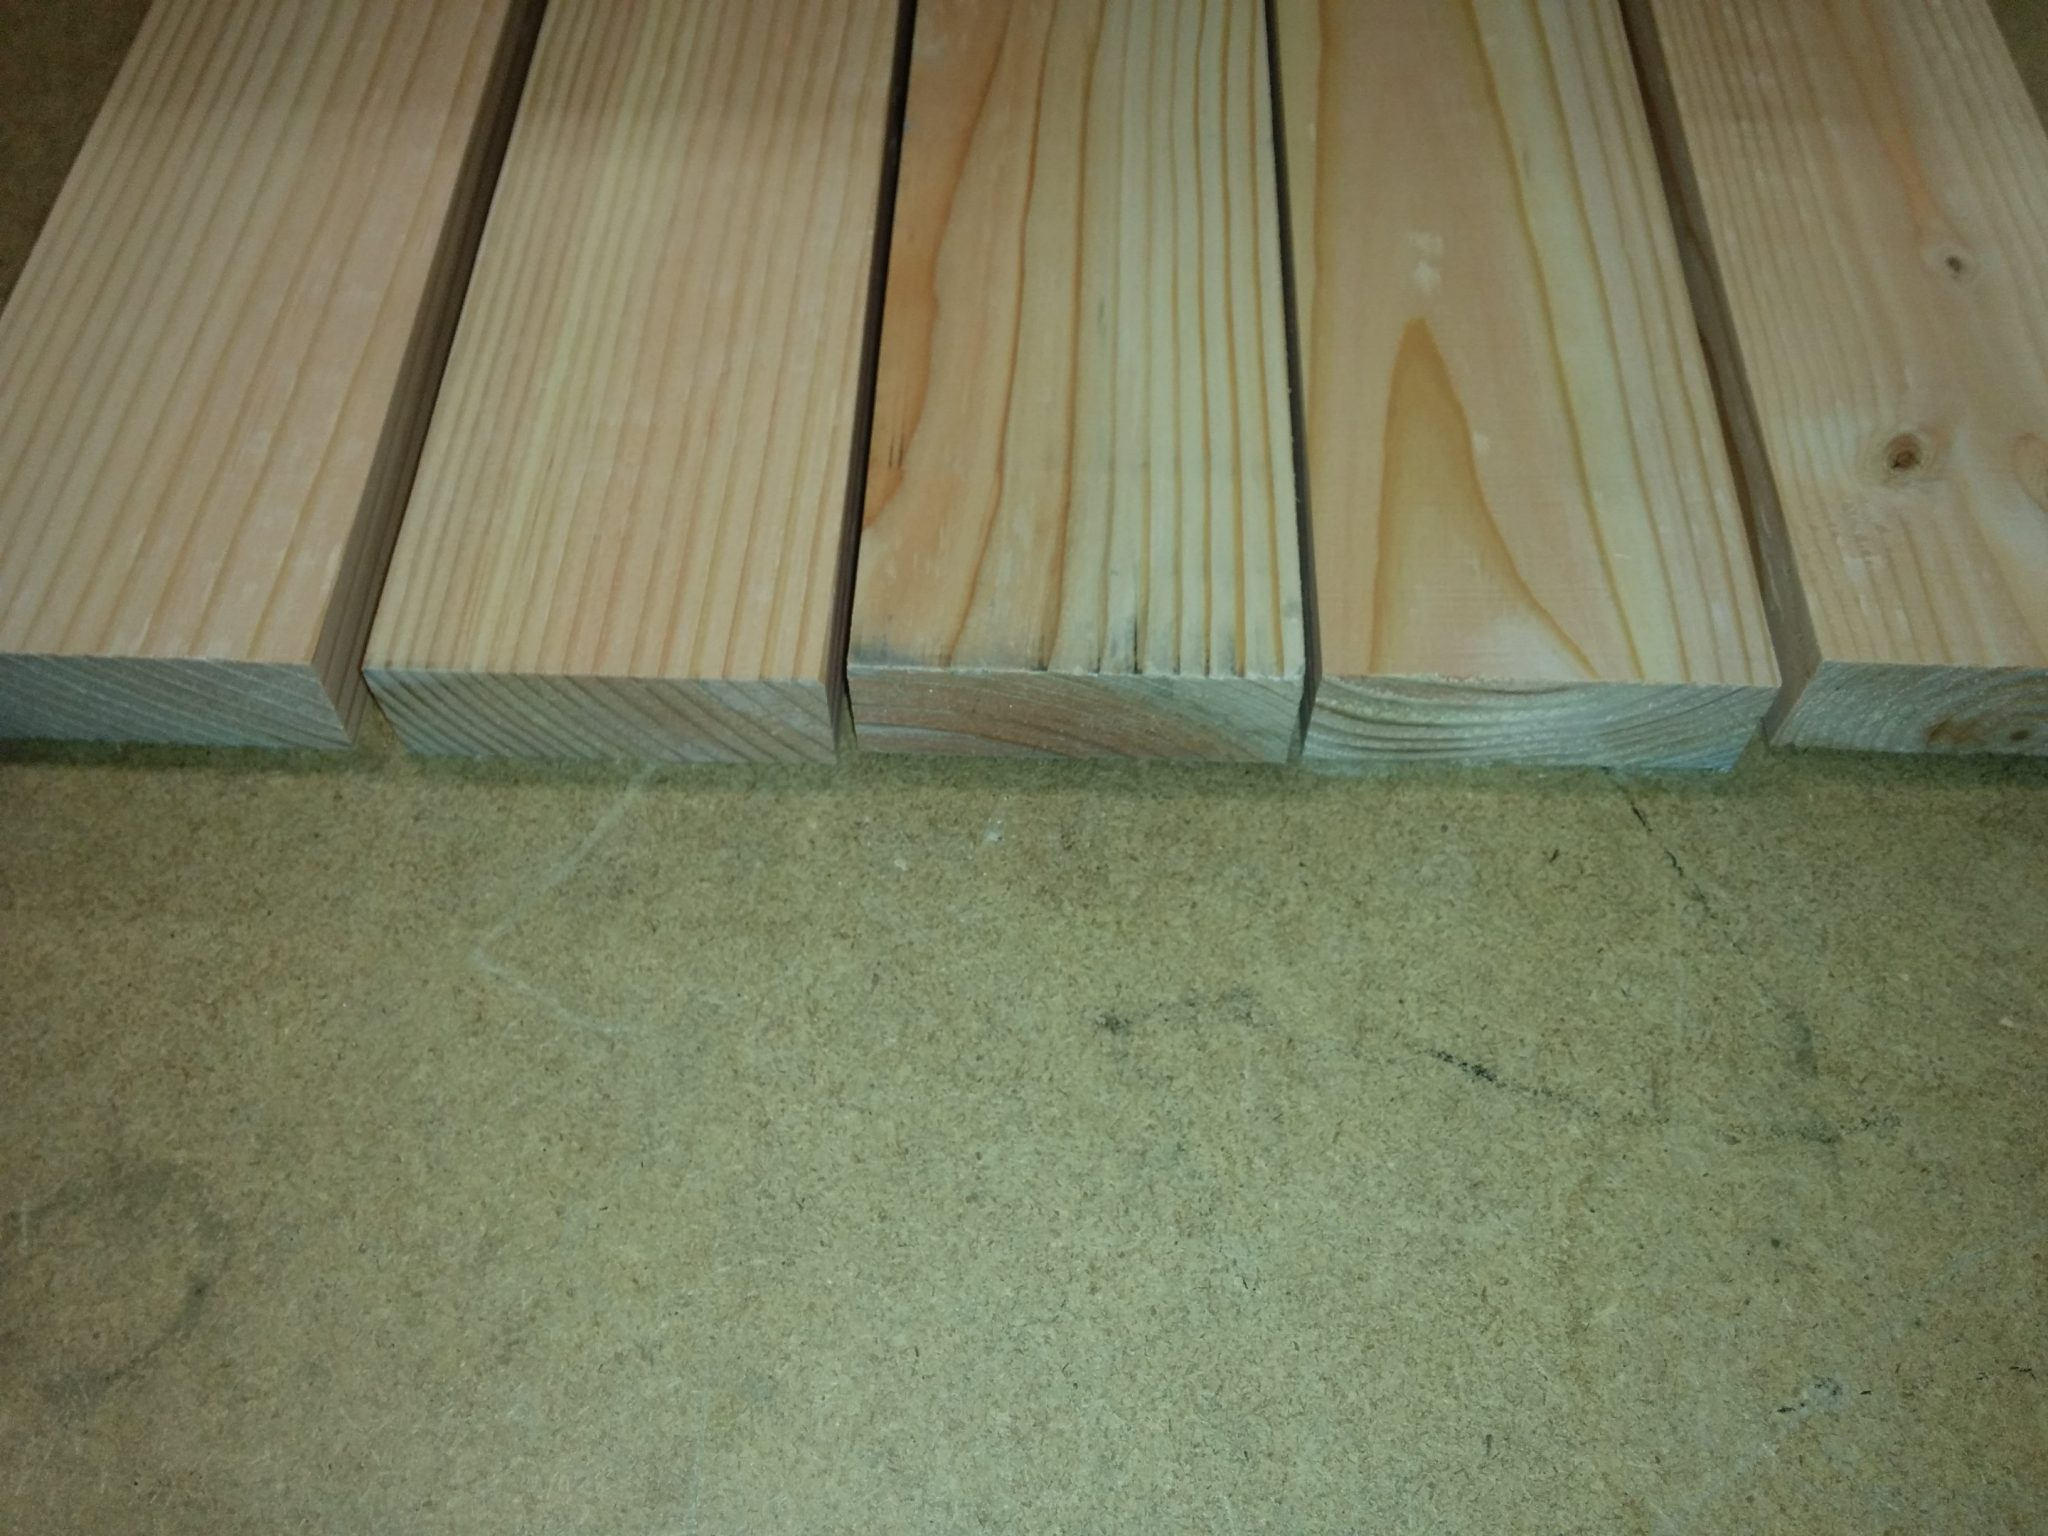 After milling all 4 sides down.